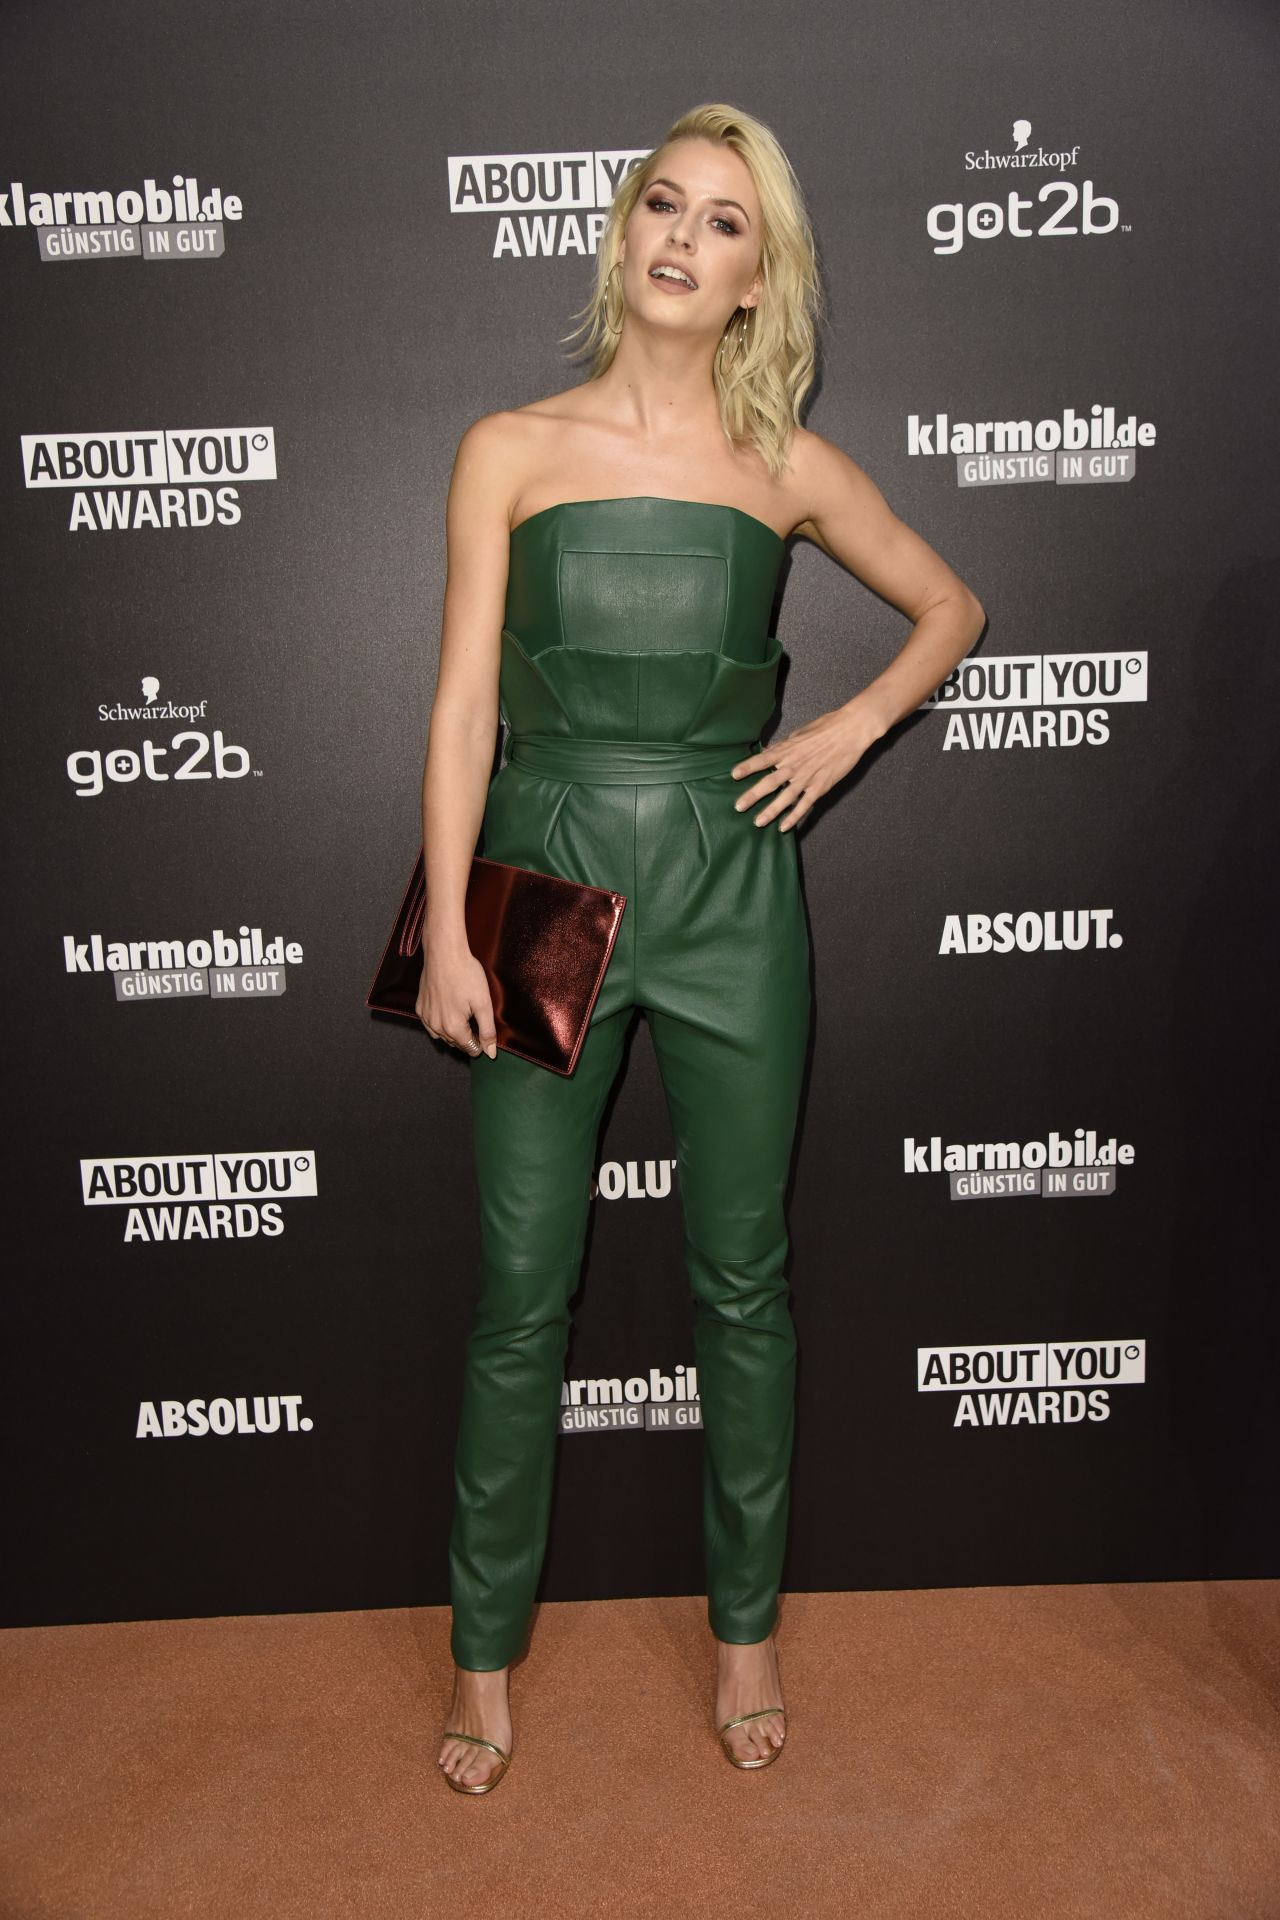 Lena Gercke About You Awards In Hamburg 05 04 2017